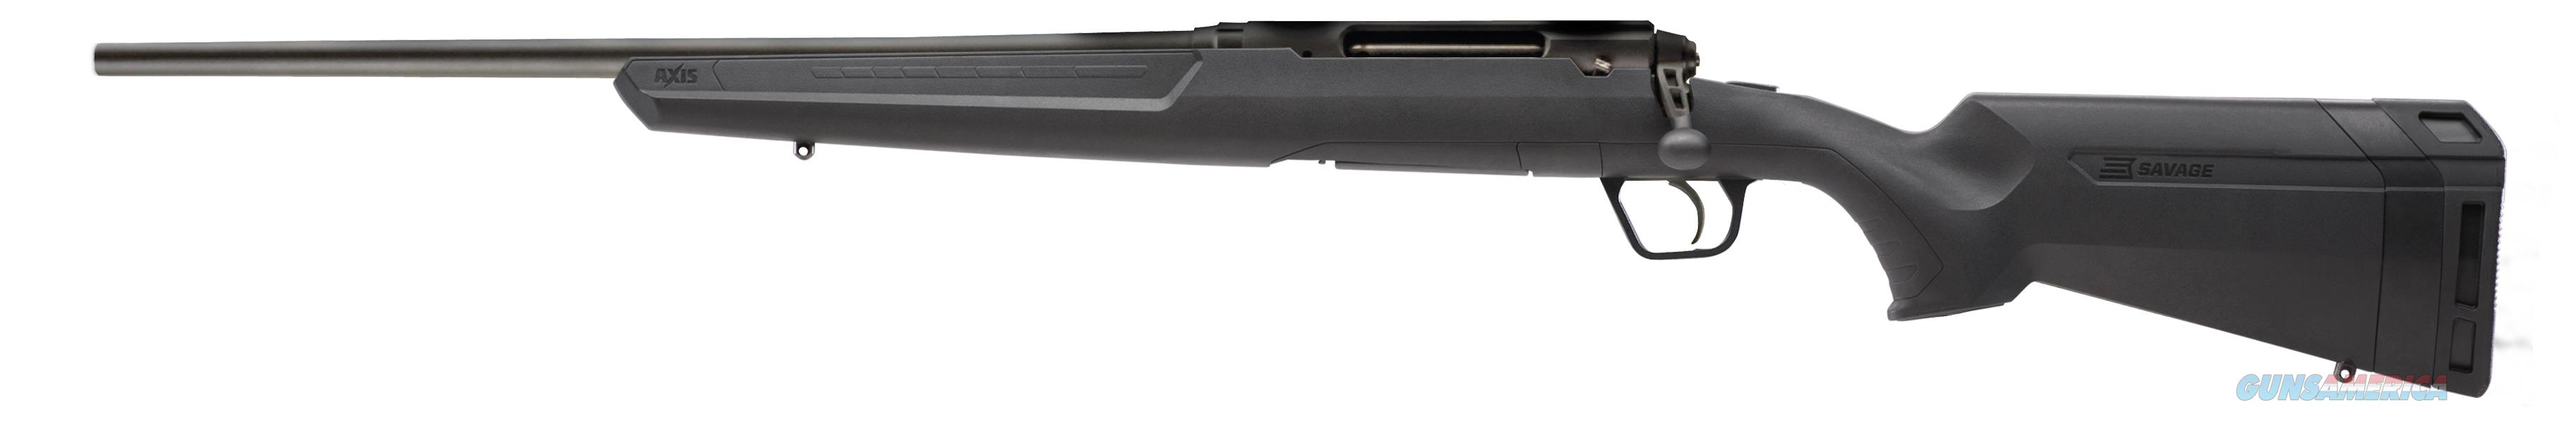 "Savage 57243 Axis Compact LH Bolt 7mm-08 Remington 20"" 4+1 Synthetic Black Stk Blued  Guns > Rifles > S Misc Rifles"